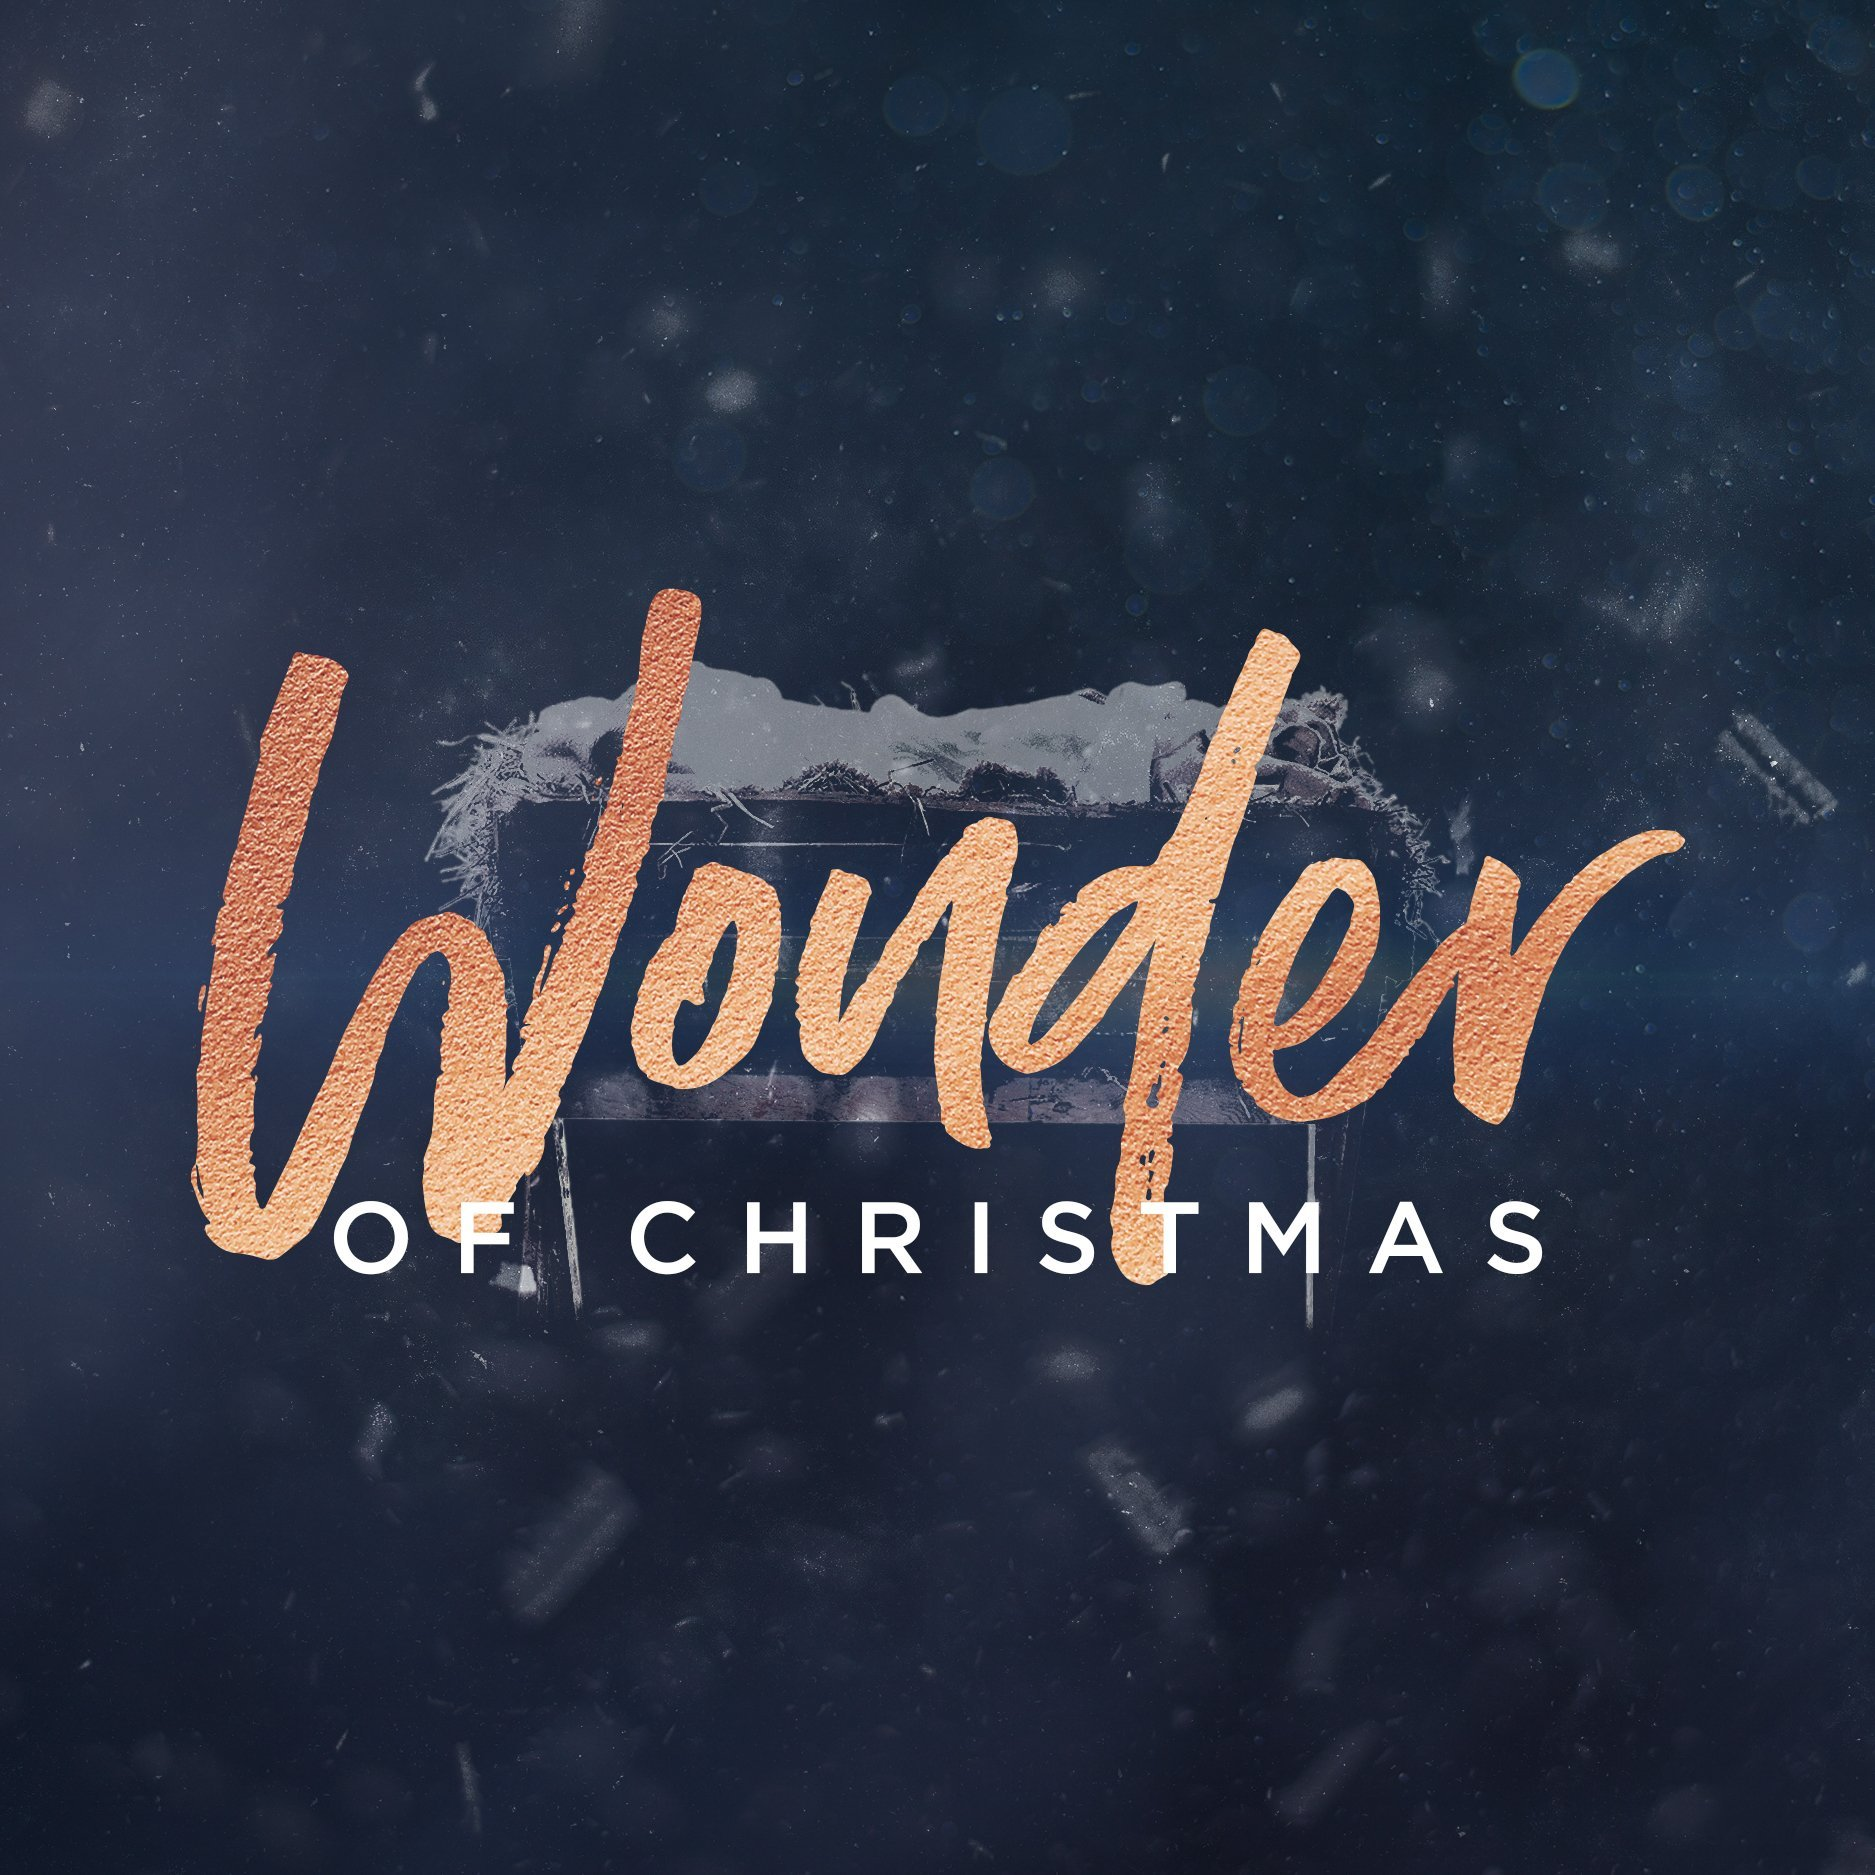 Wonder of Christmas Design